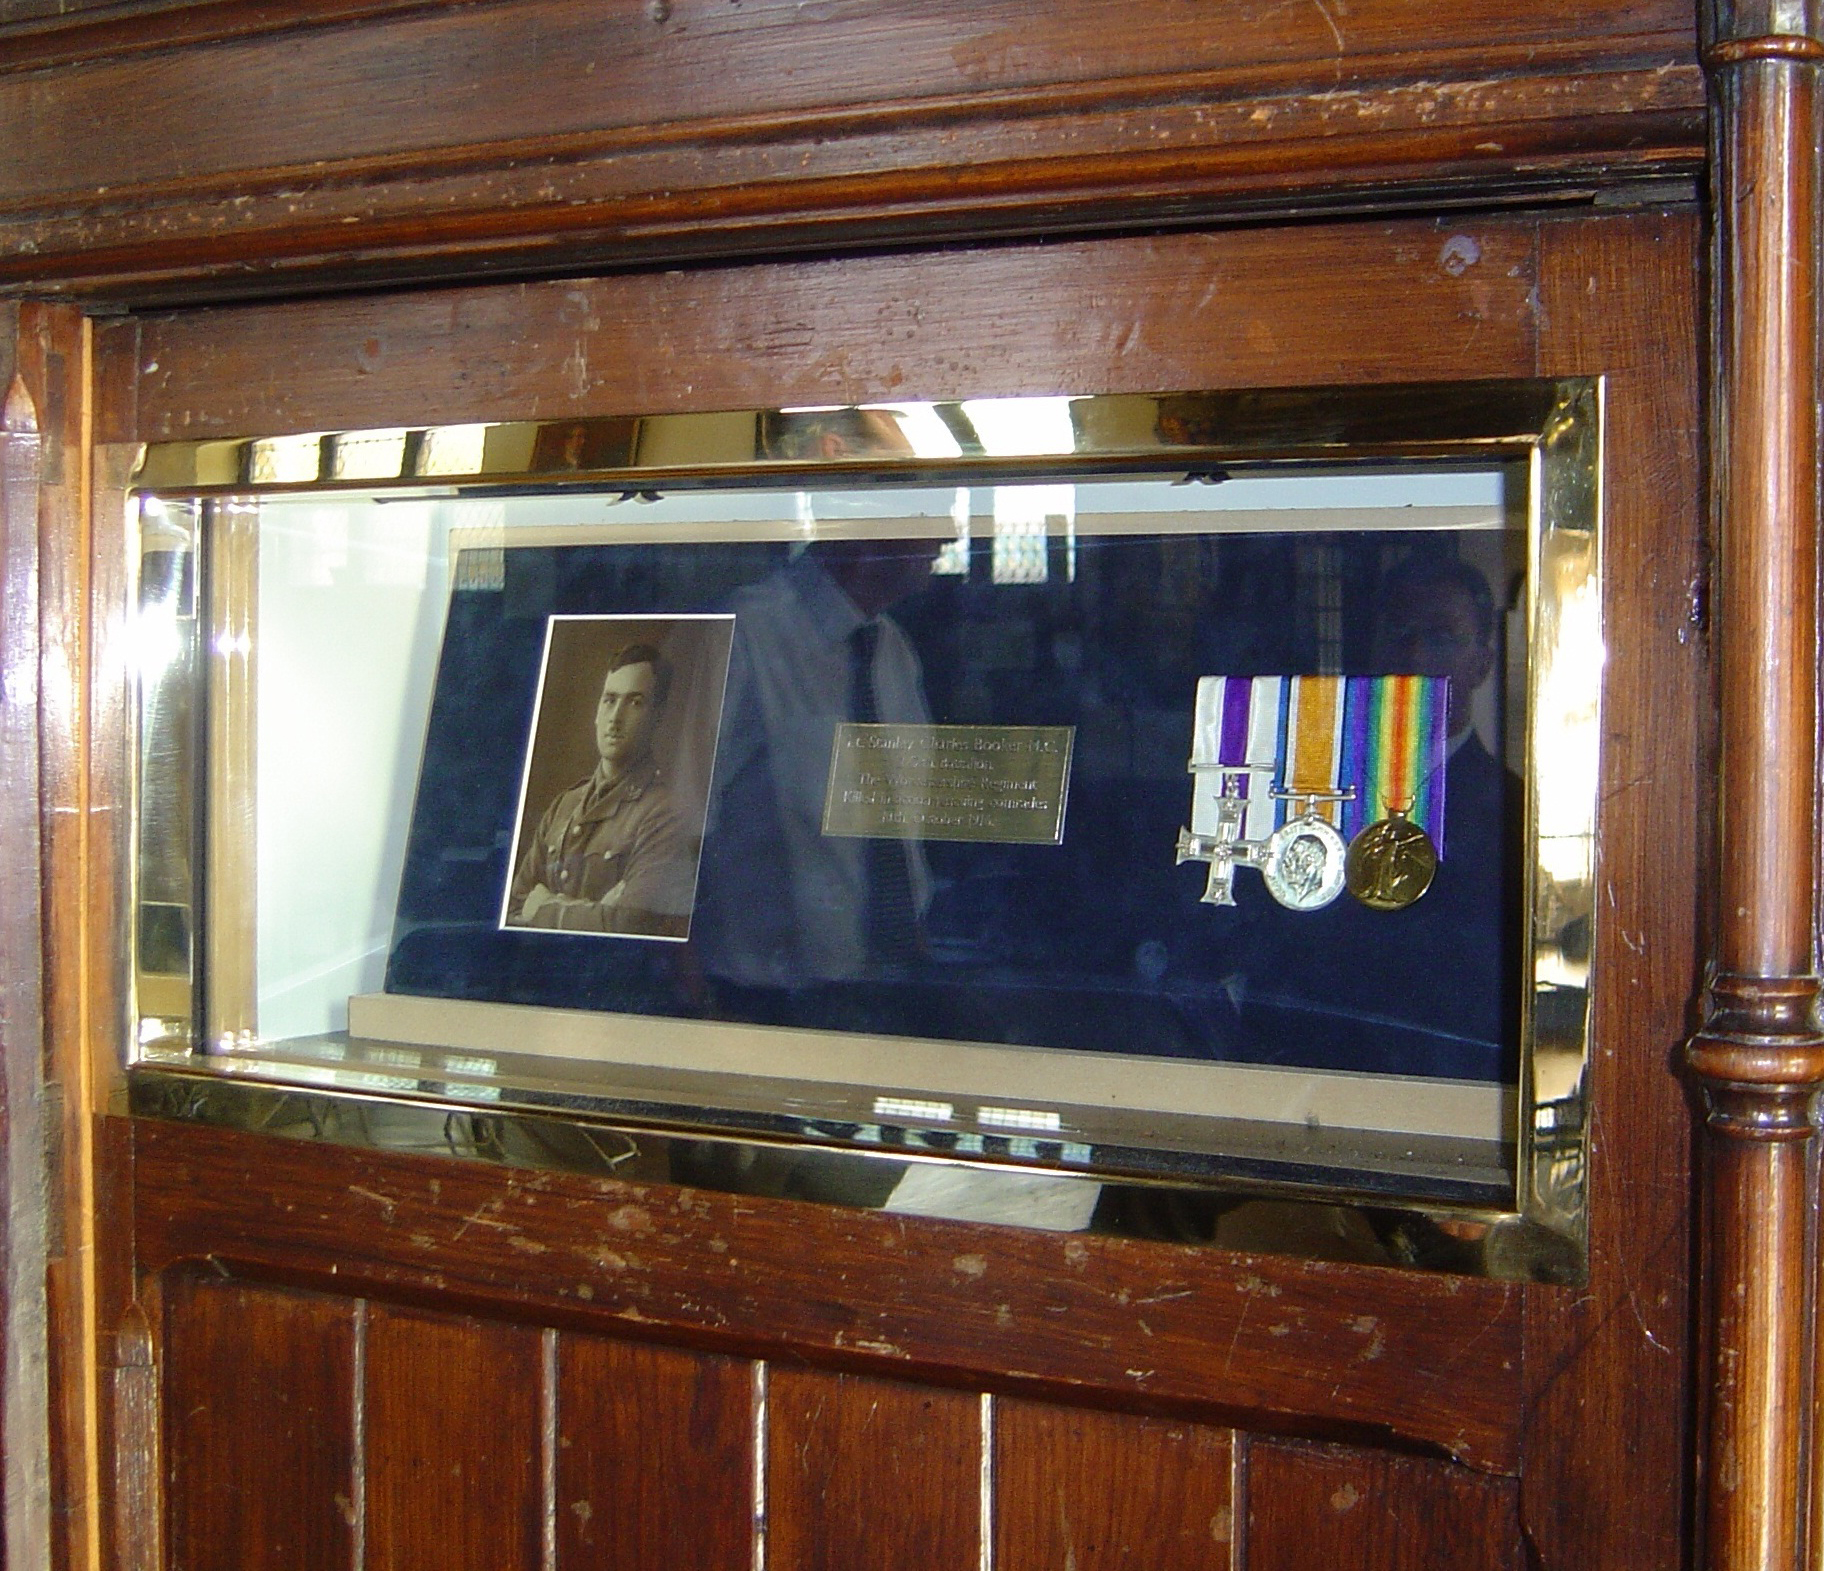 High Security Display Case - Built into existing wooden panelling